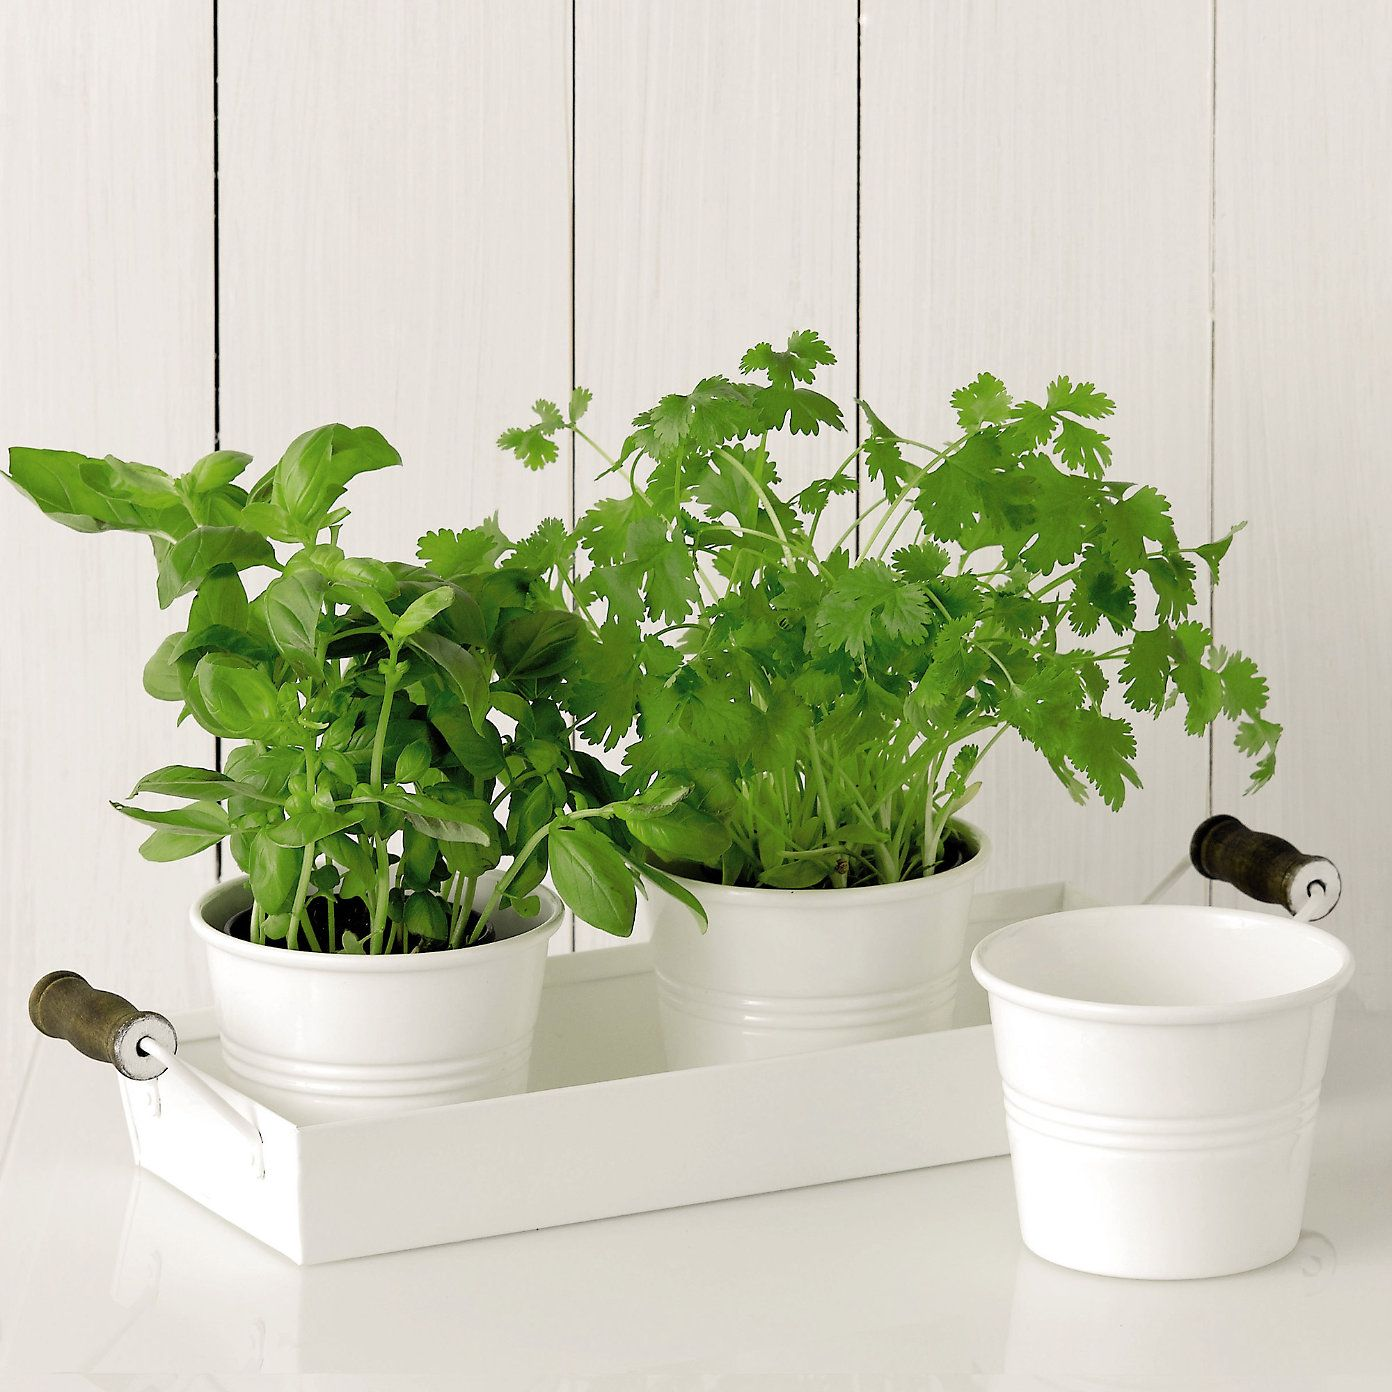 Herb Pots Kitchen Enamelware Herb Pots With Tray From The White Company